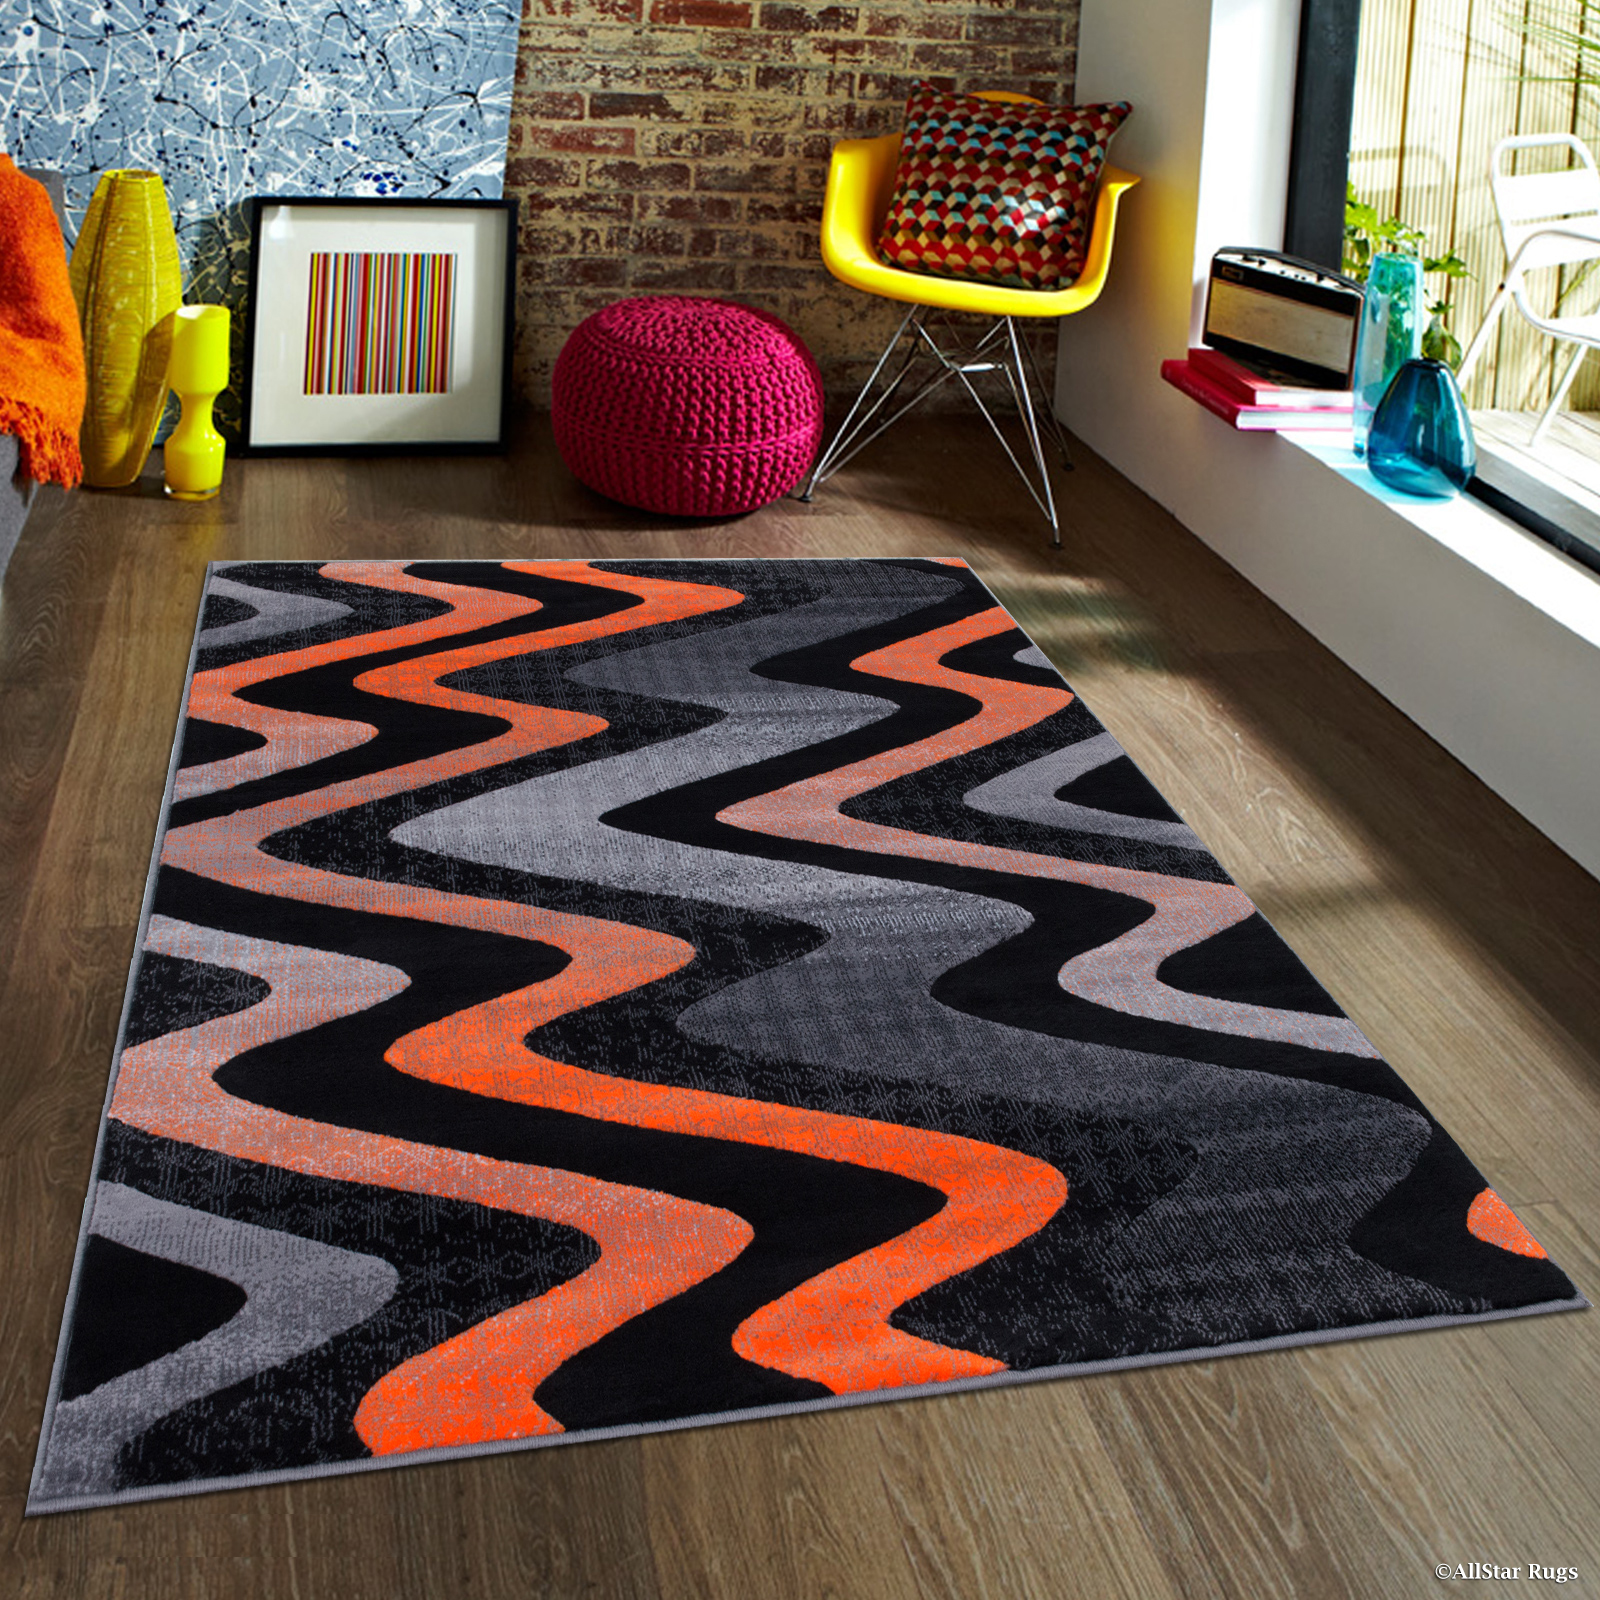 "Orange Allstar Modern. Contemporary Woven Rug. Drop-Stitch weave technique. Carve Effect. Vivid Pop Colors (7' 10"" x 10')"